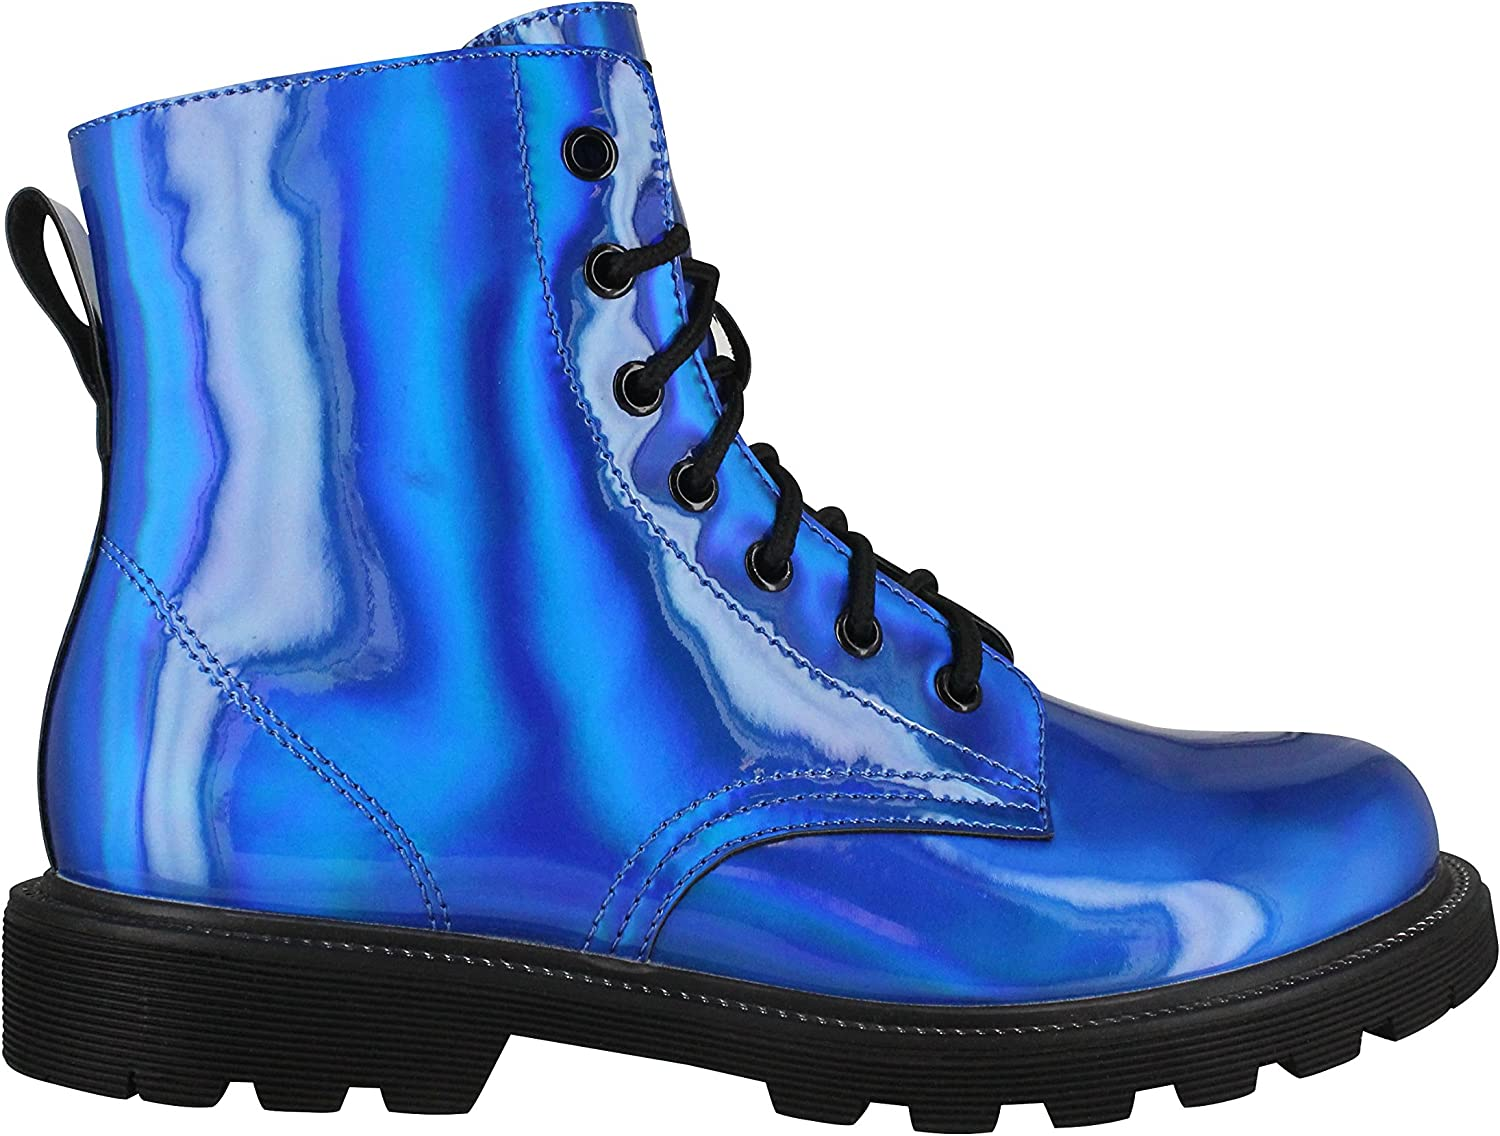 Colored Combat Boots